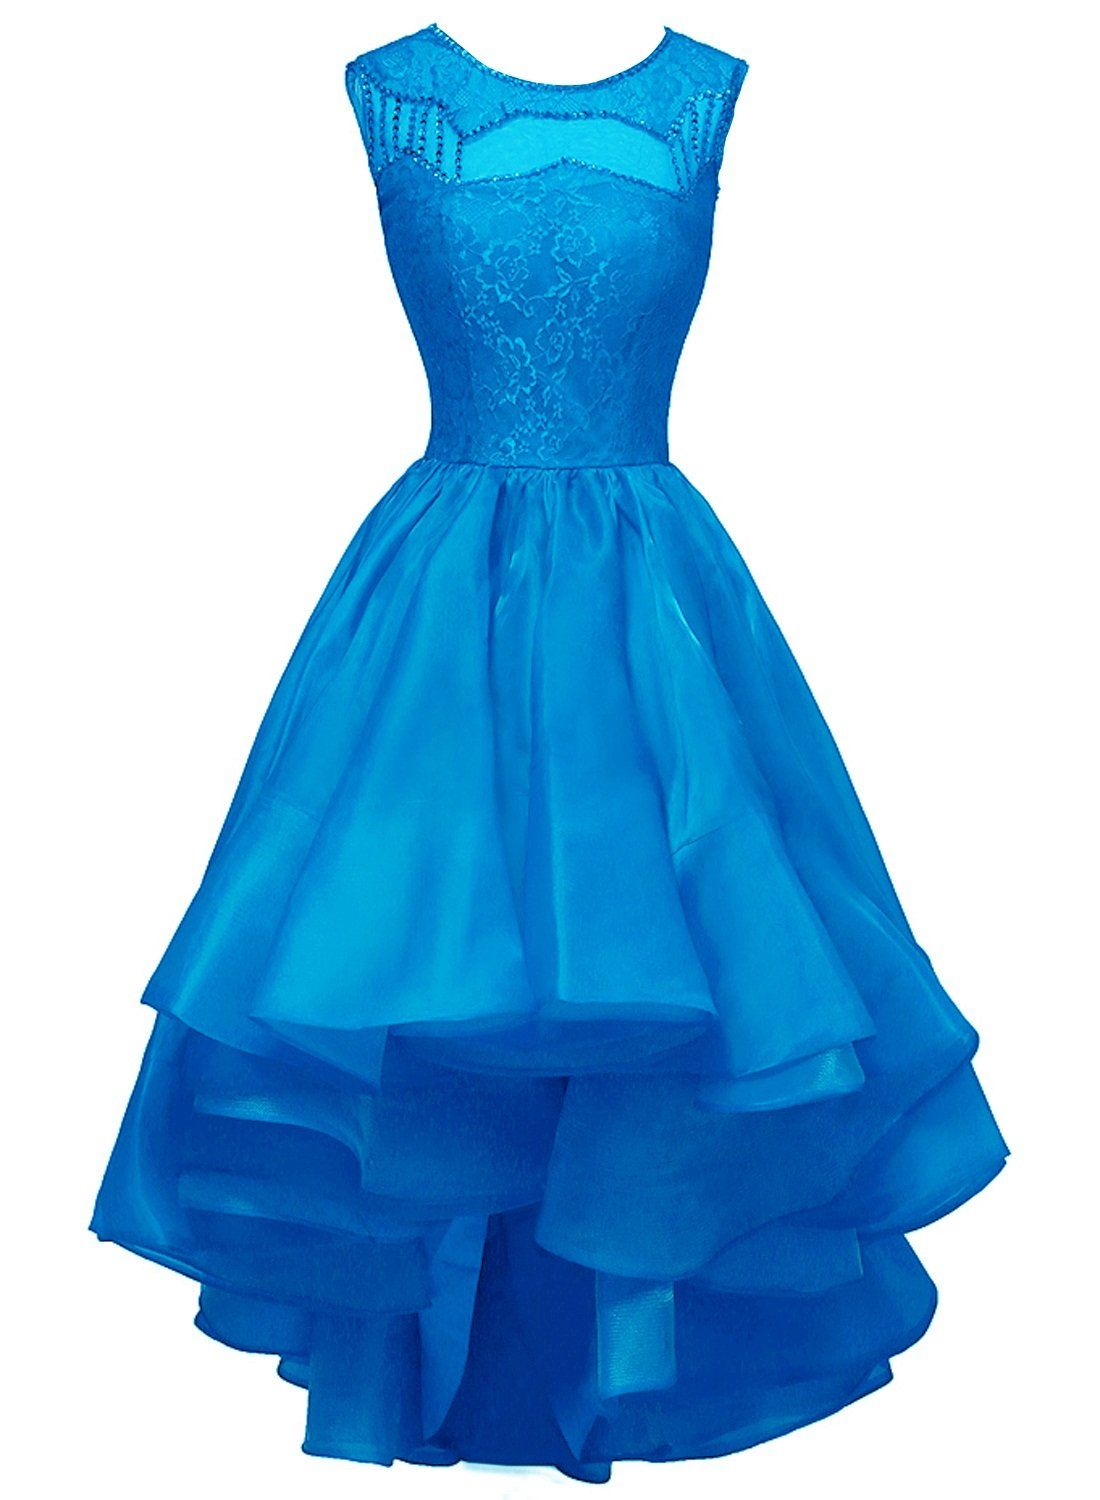 Bess bridal womens highlow beaded lace organza prom party evening